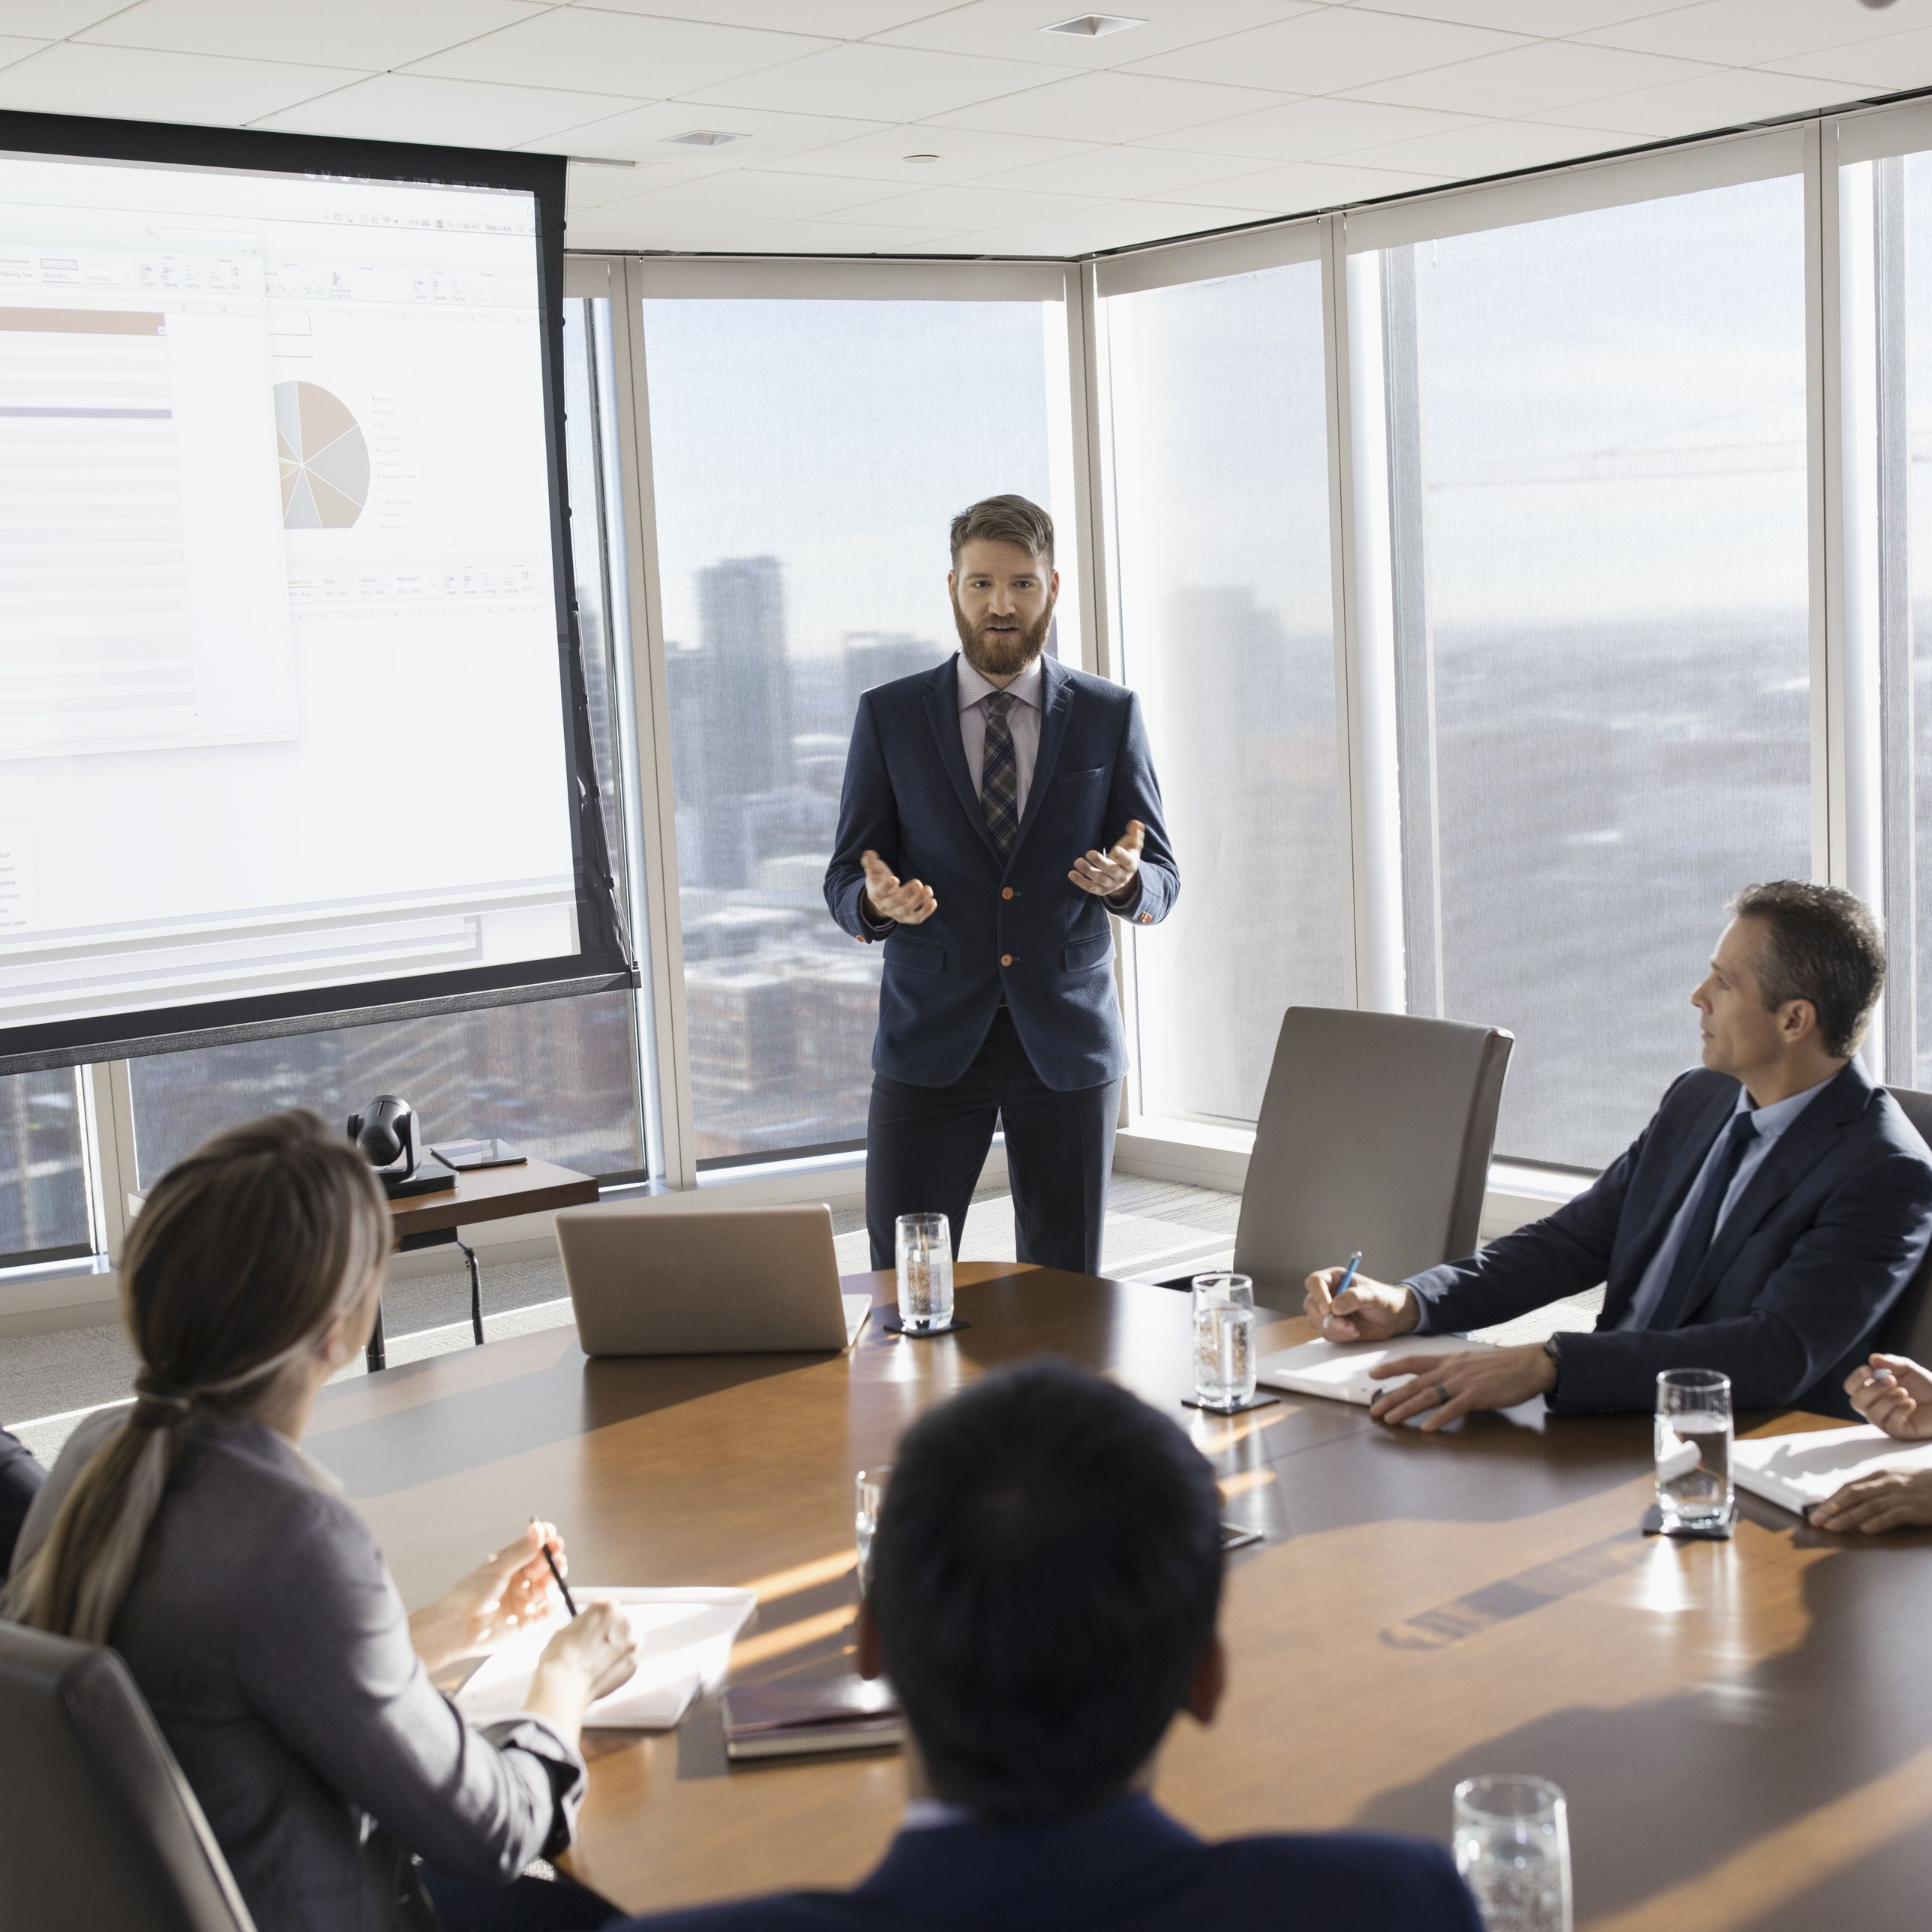 Business Storytelling Skills for Workplace Success